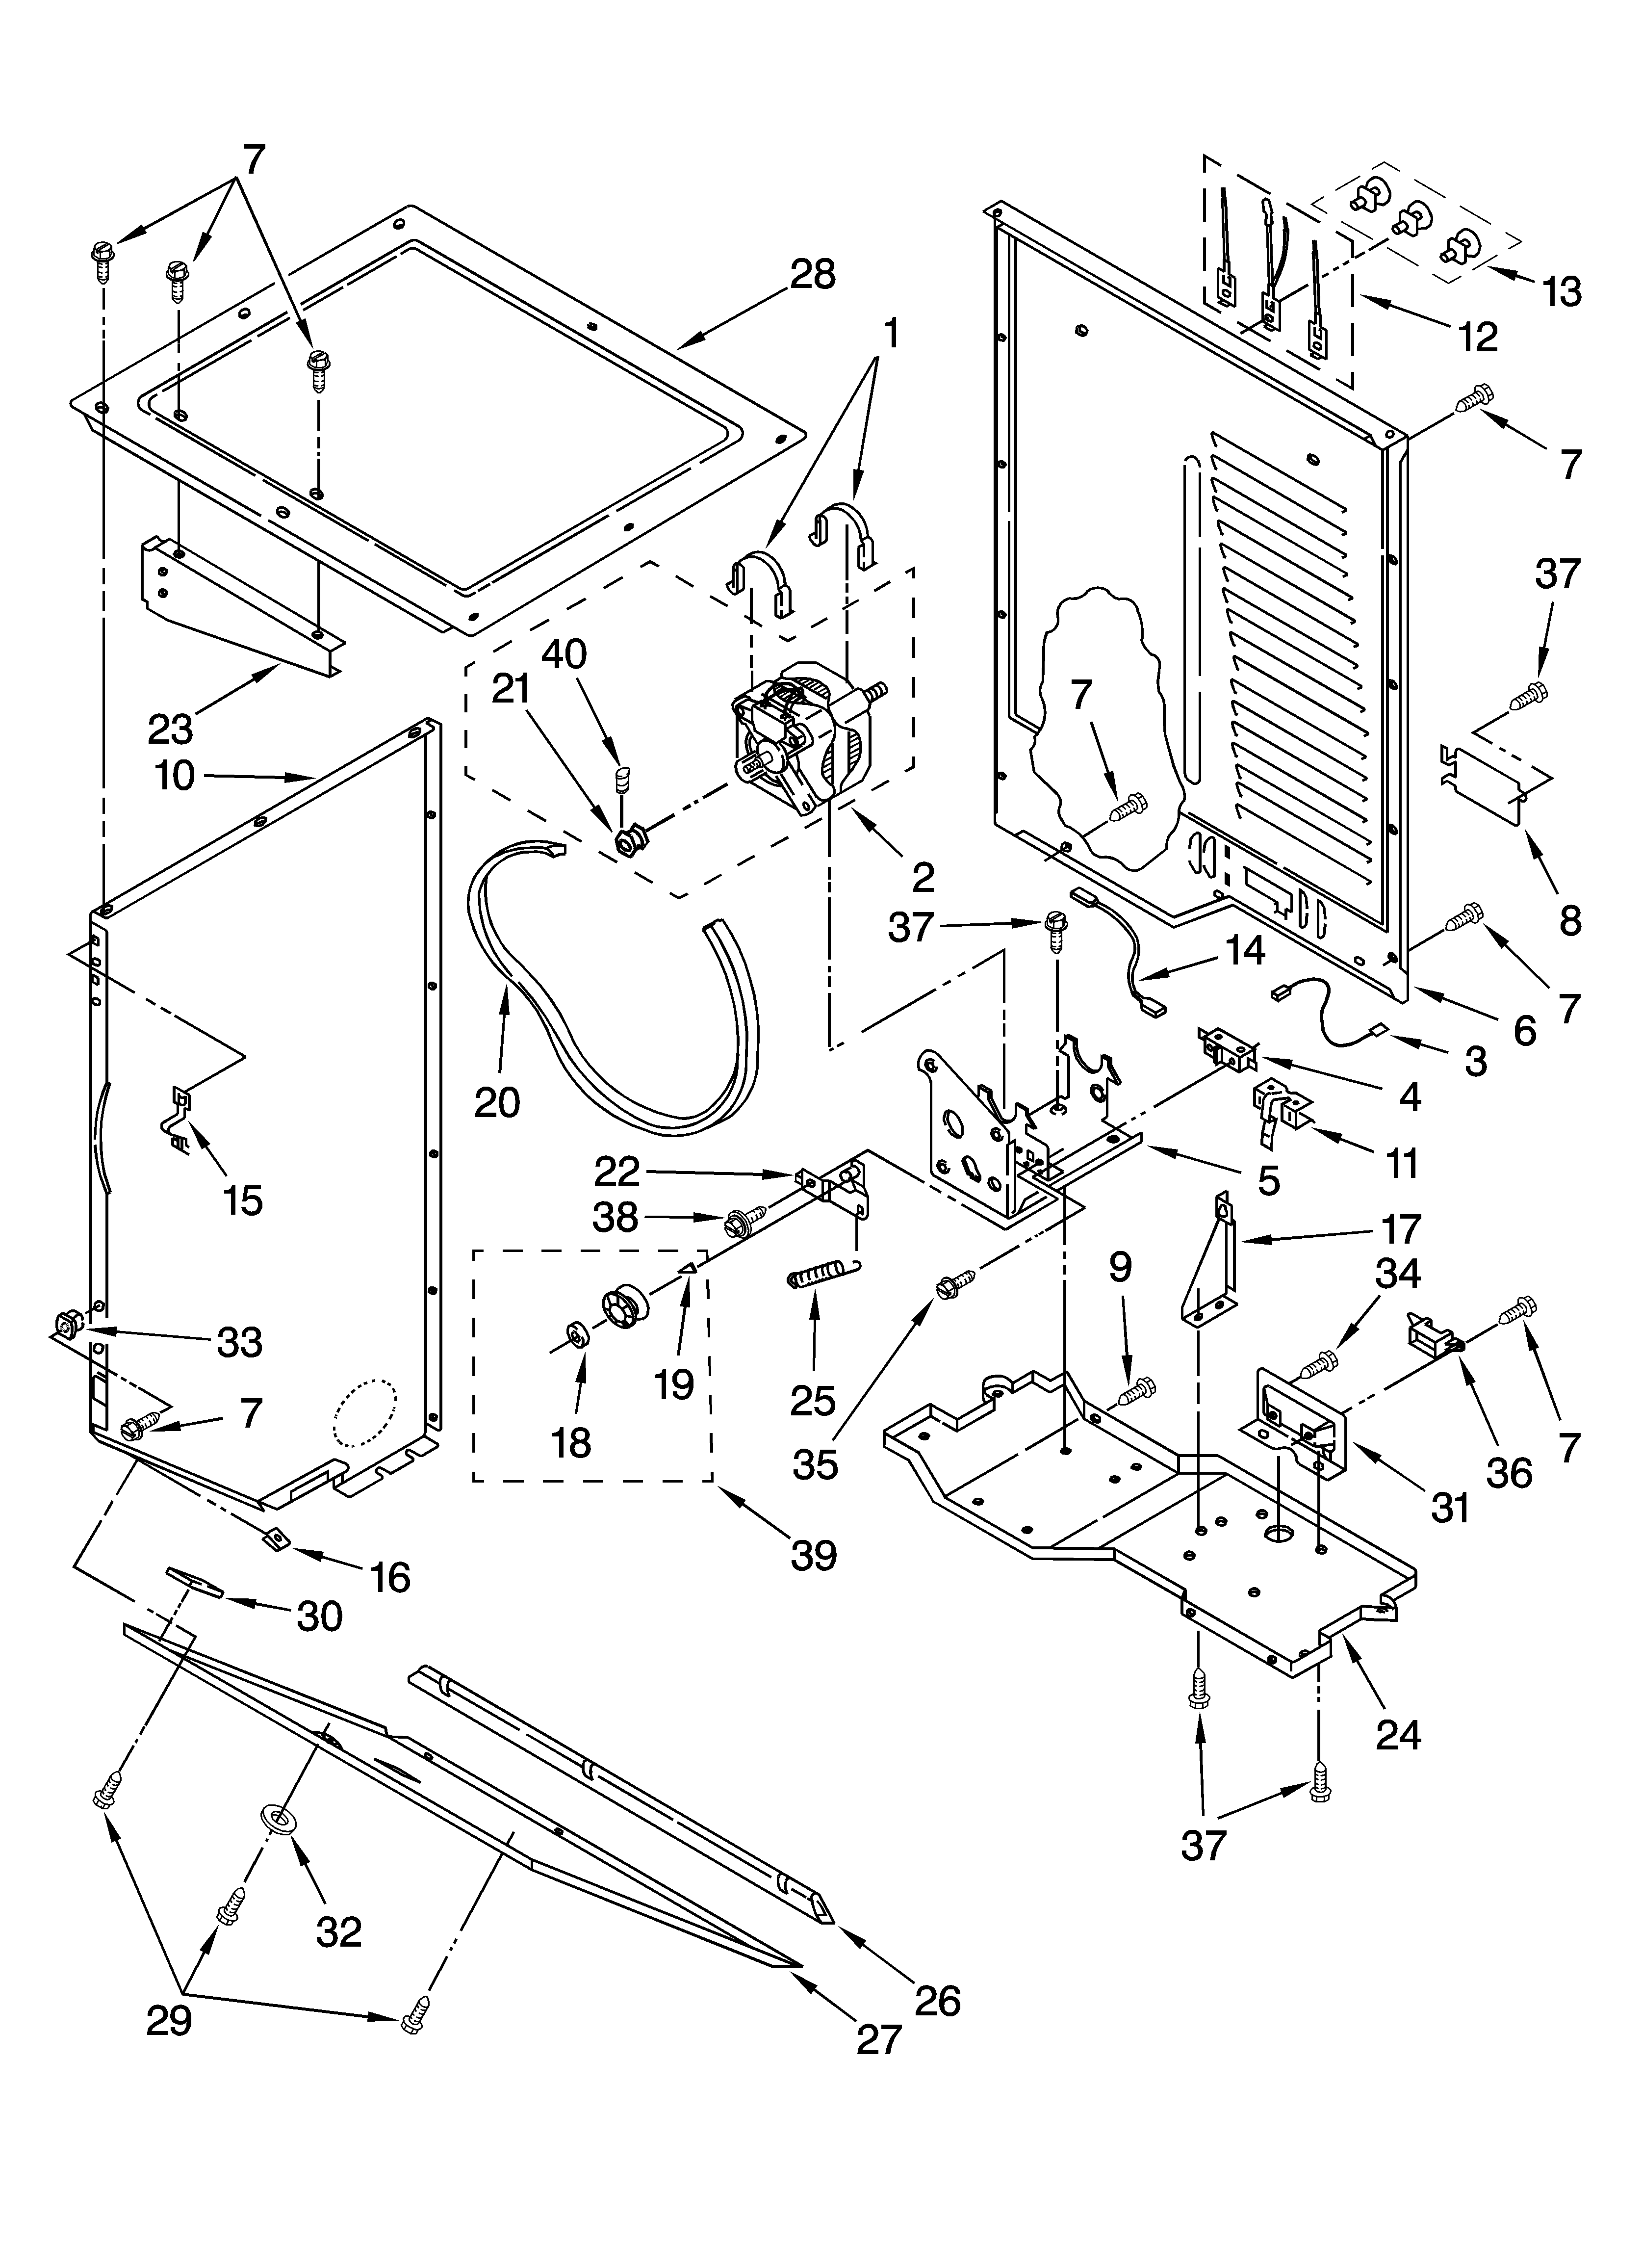 Maytag MET3800TW0 dryer cabinet and motor parts diagram